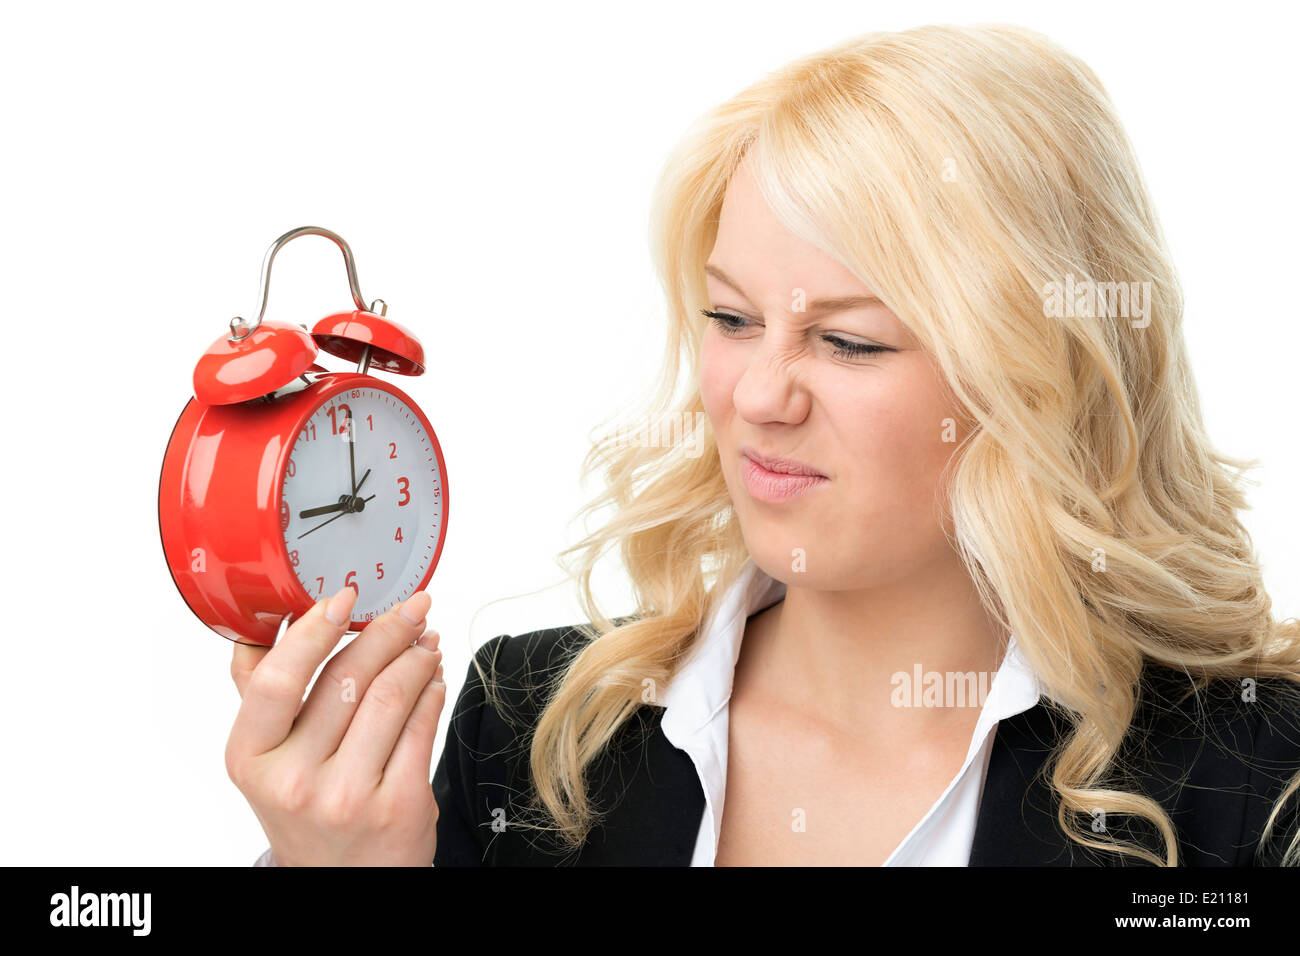 Laughing blond woman unhappy with red alarm clock - Stock Image